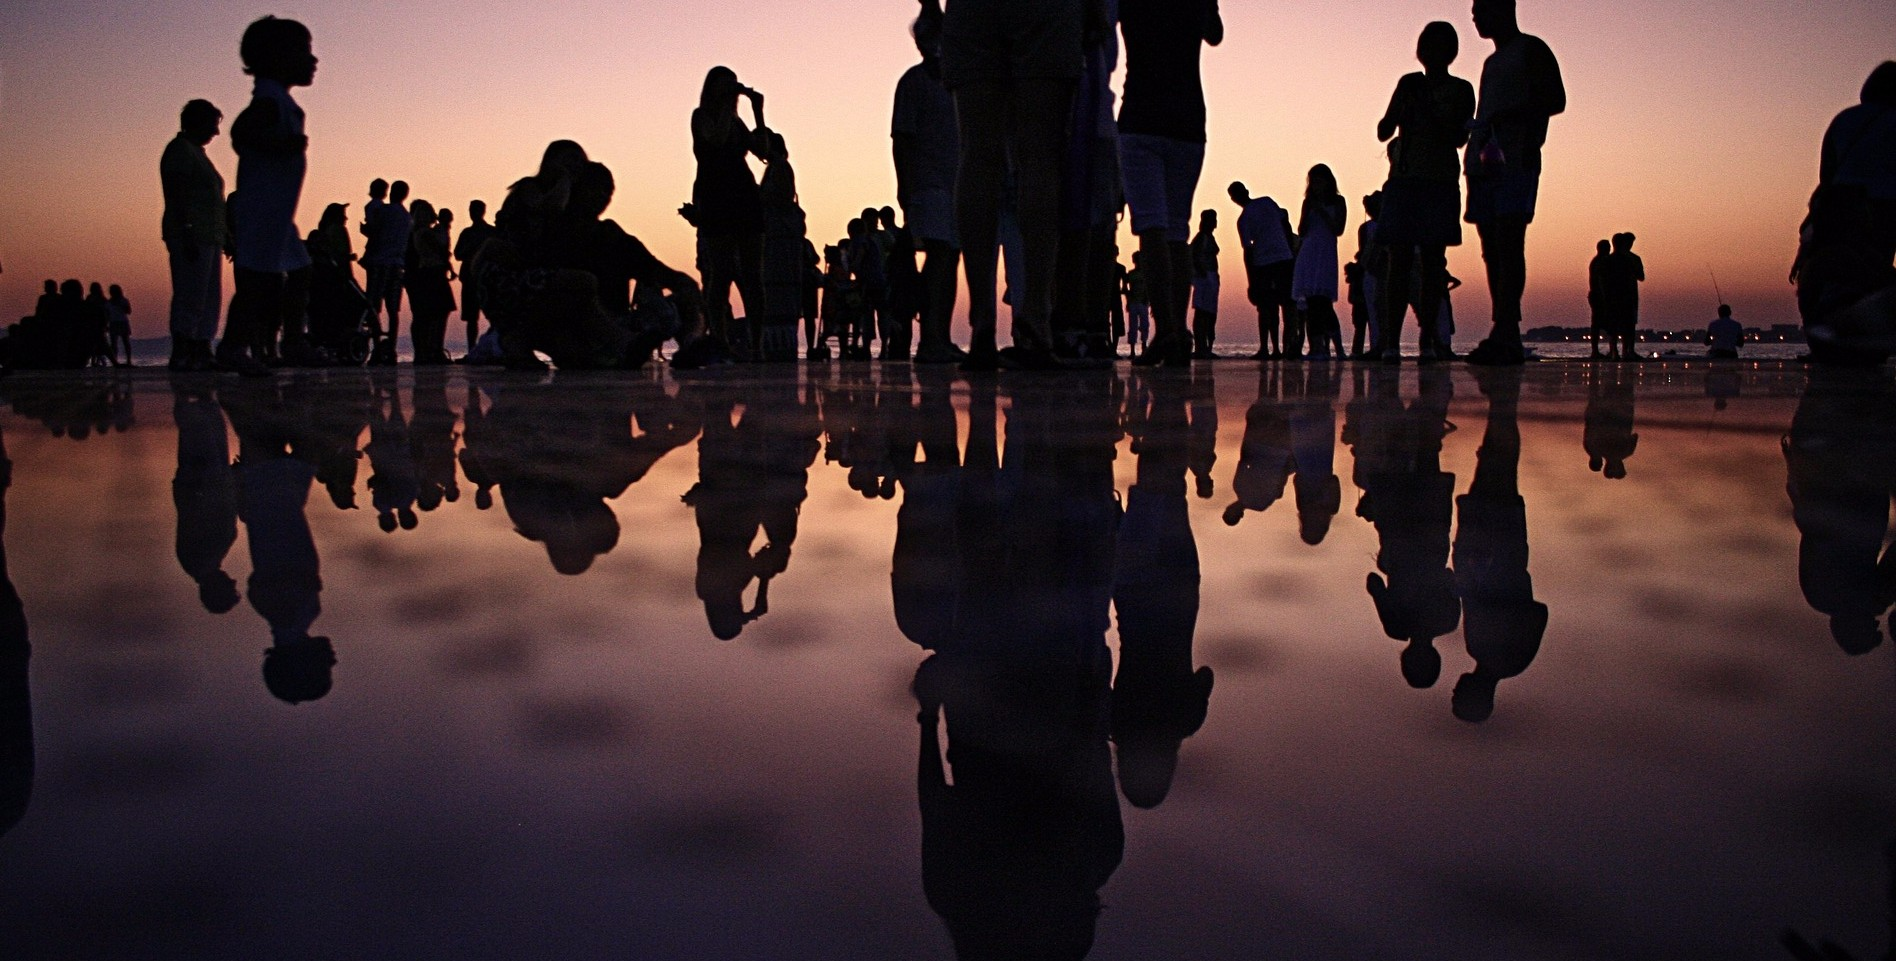 A silhouette of a group of people on a beach at dusk